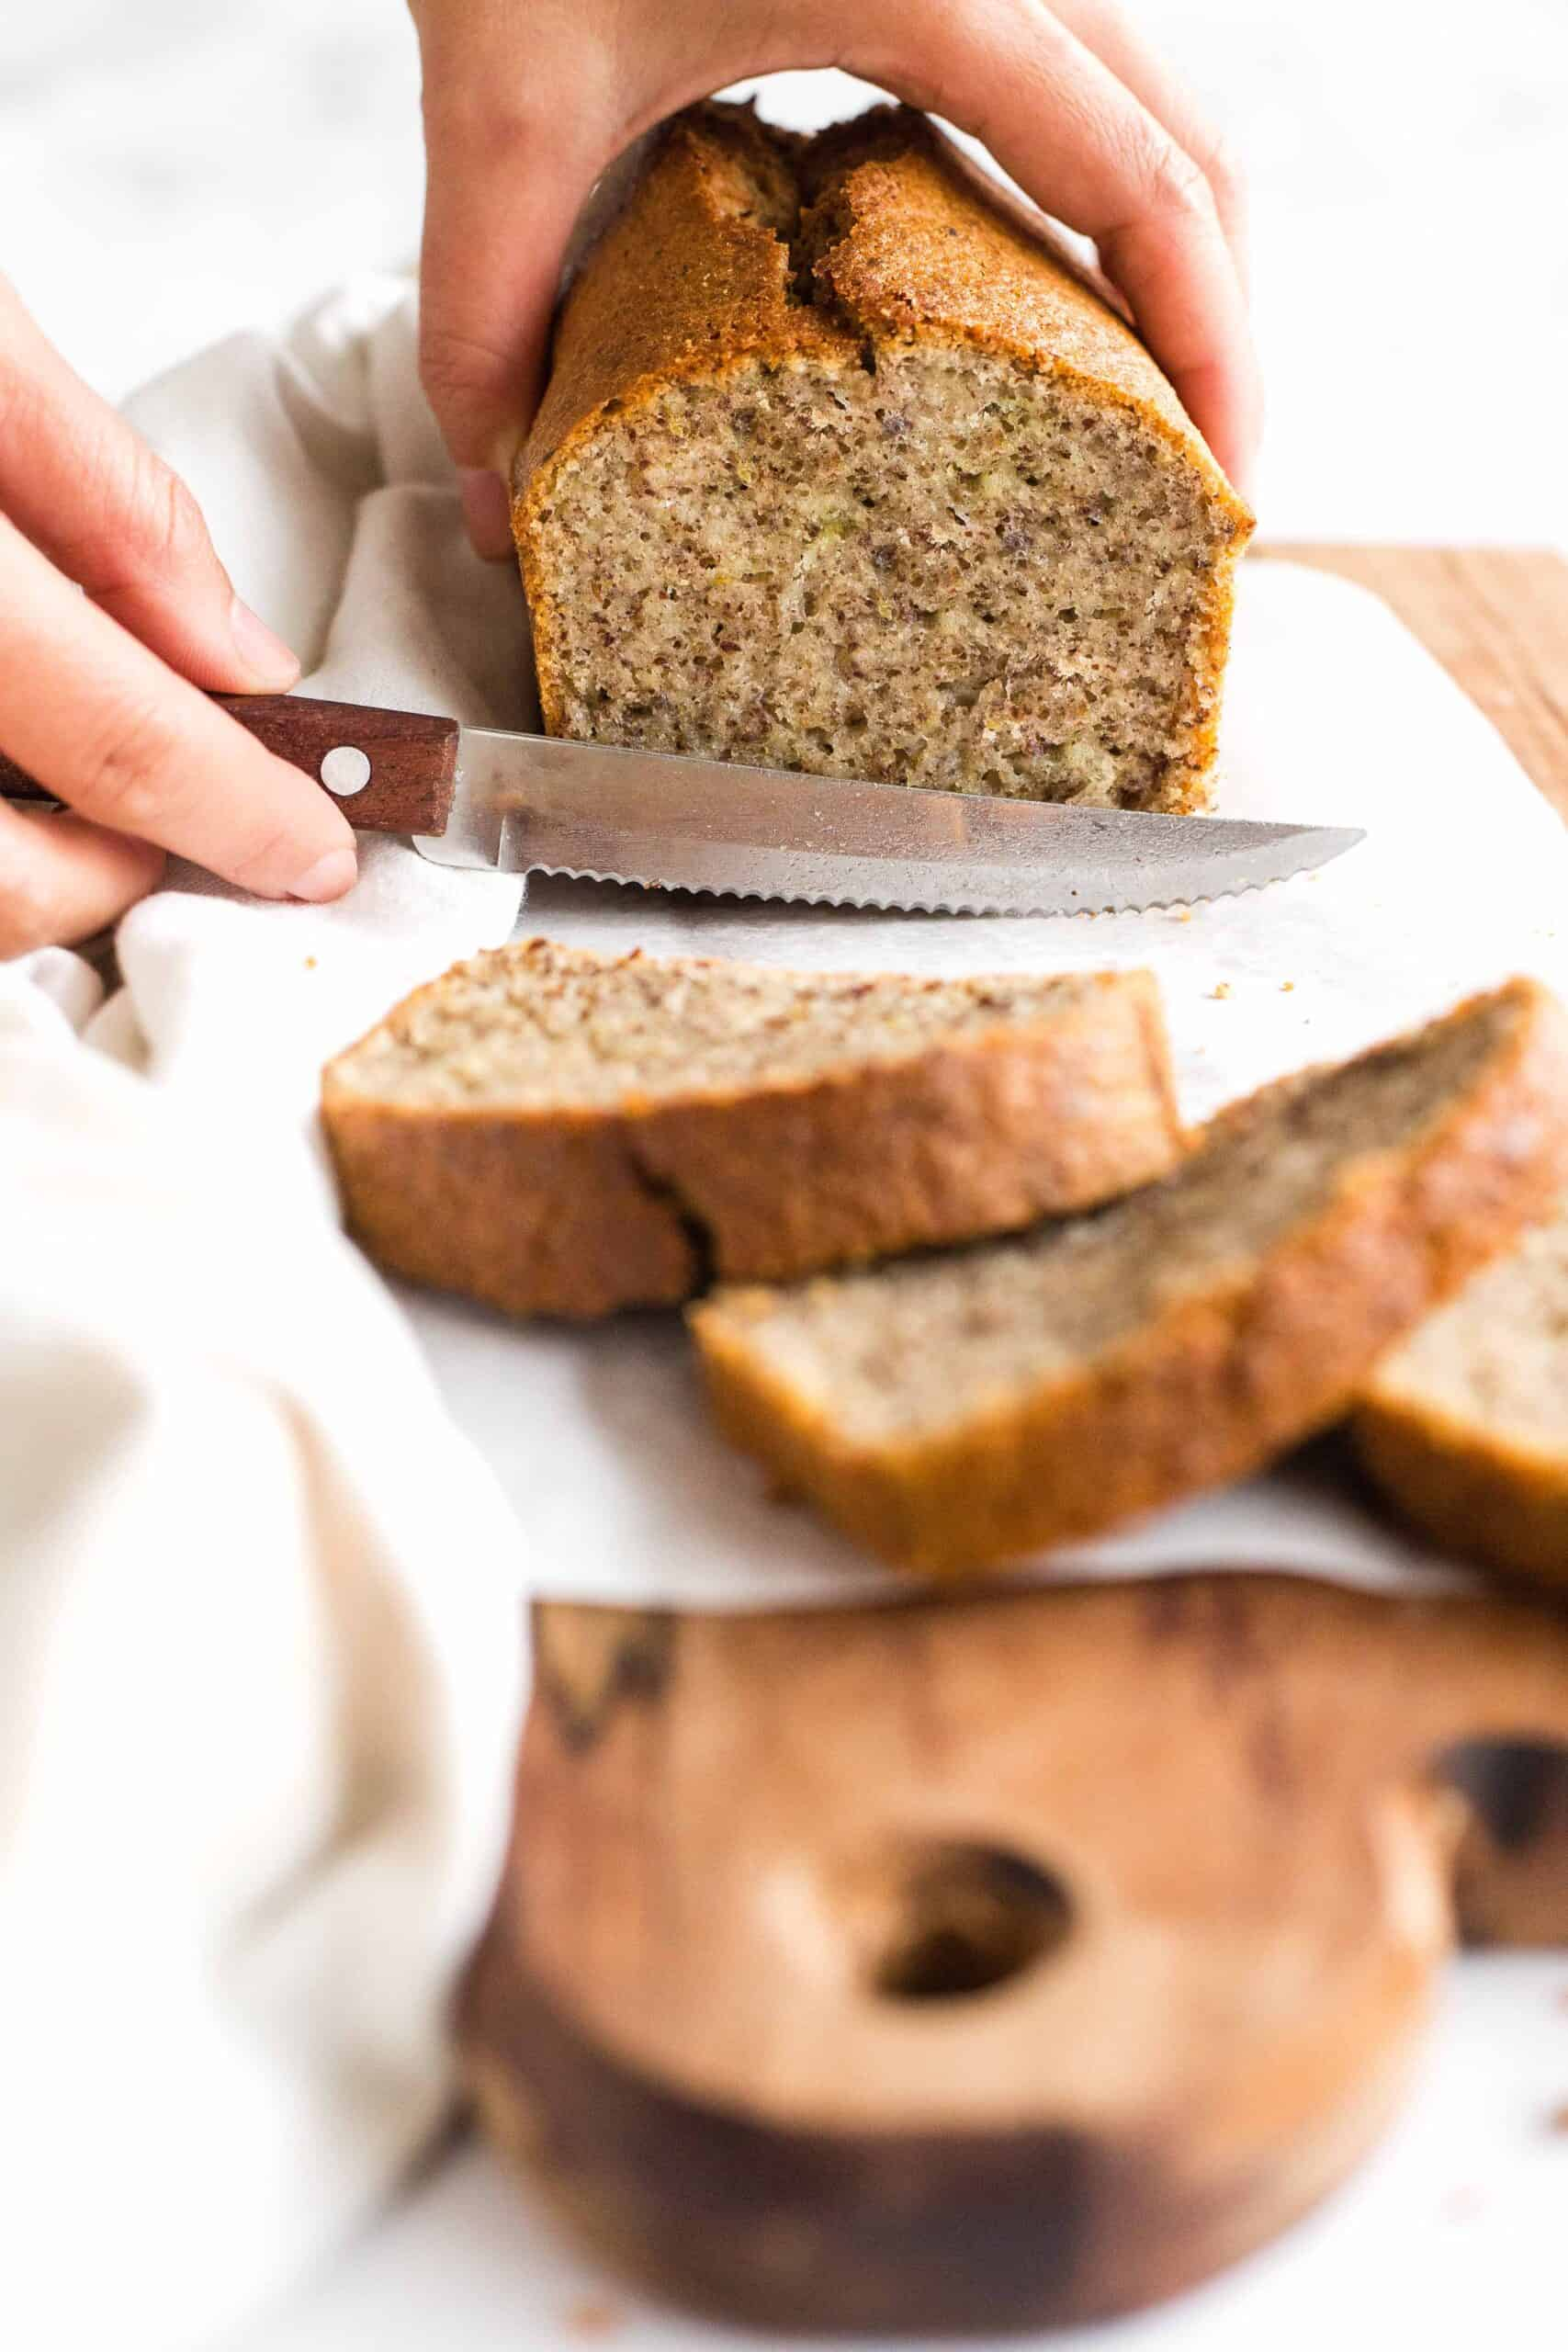 Slicing into a loaf of flaxseed bread on a wooden board.